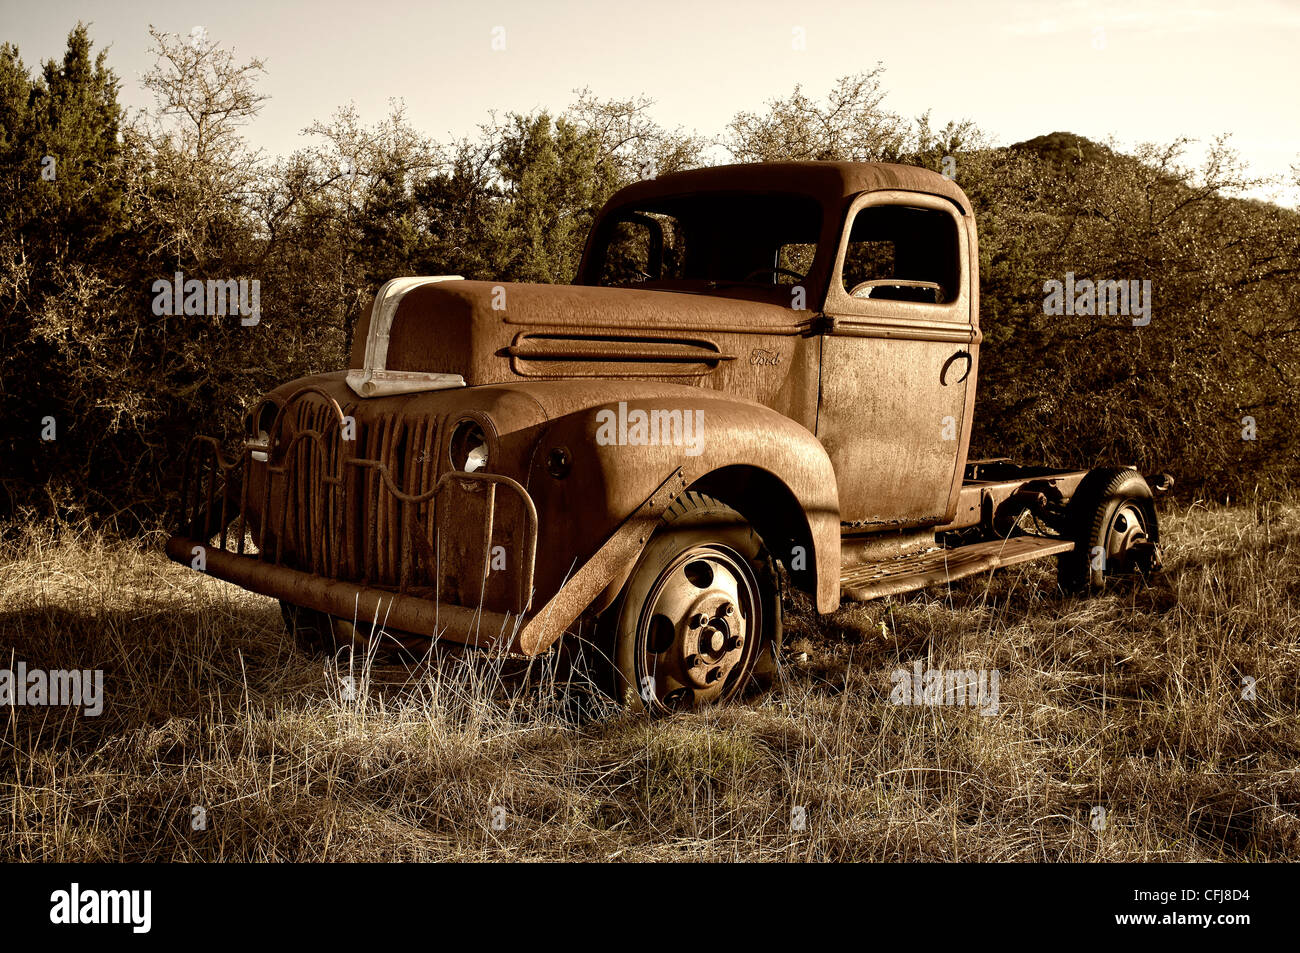 rostige alte ford oldtimer pickup truck stockfoto bild. Black Bedroom Furniture Sets. Home Design Ideas